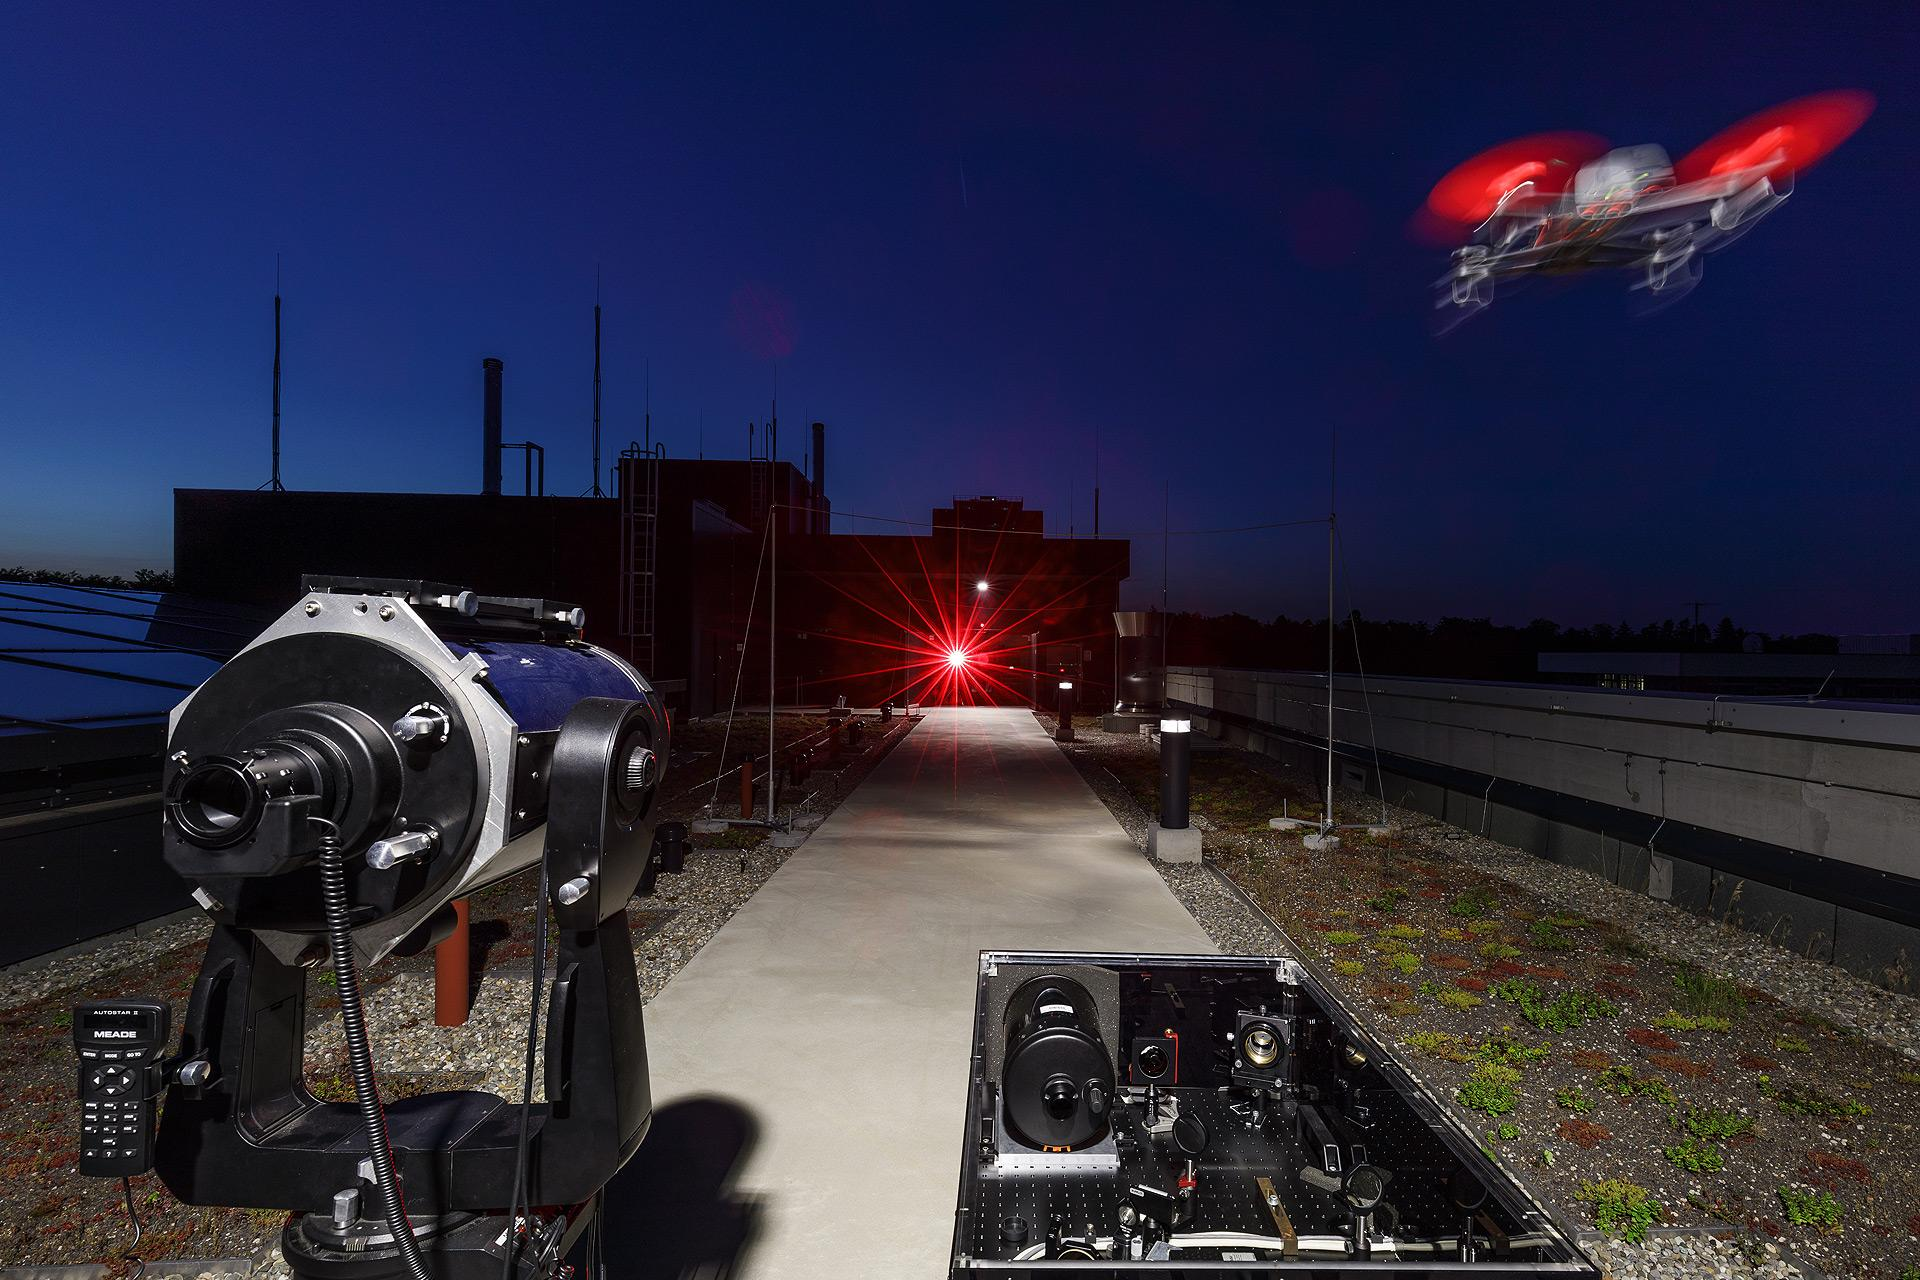 Test facility for tracking unmanned aerial vehicles using laser